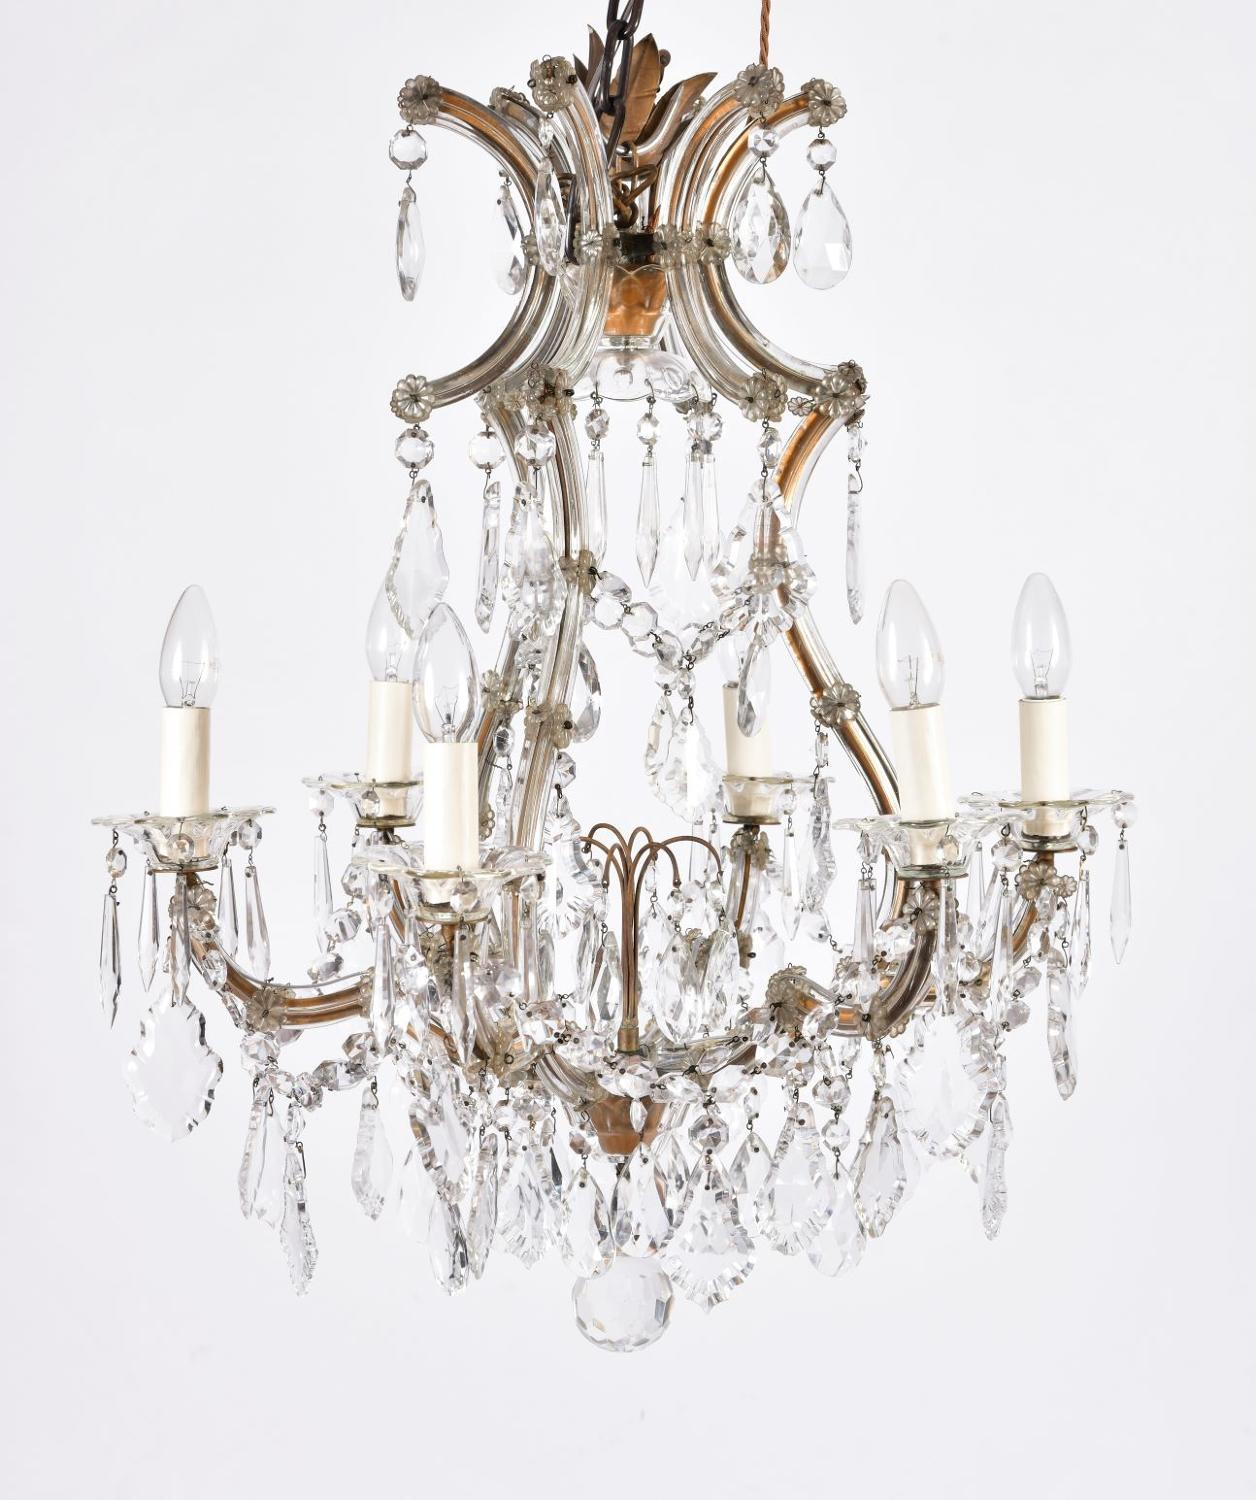 A small charming Marie Theresa chandelier